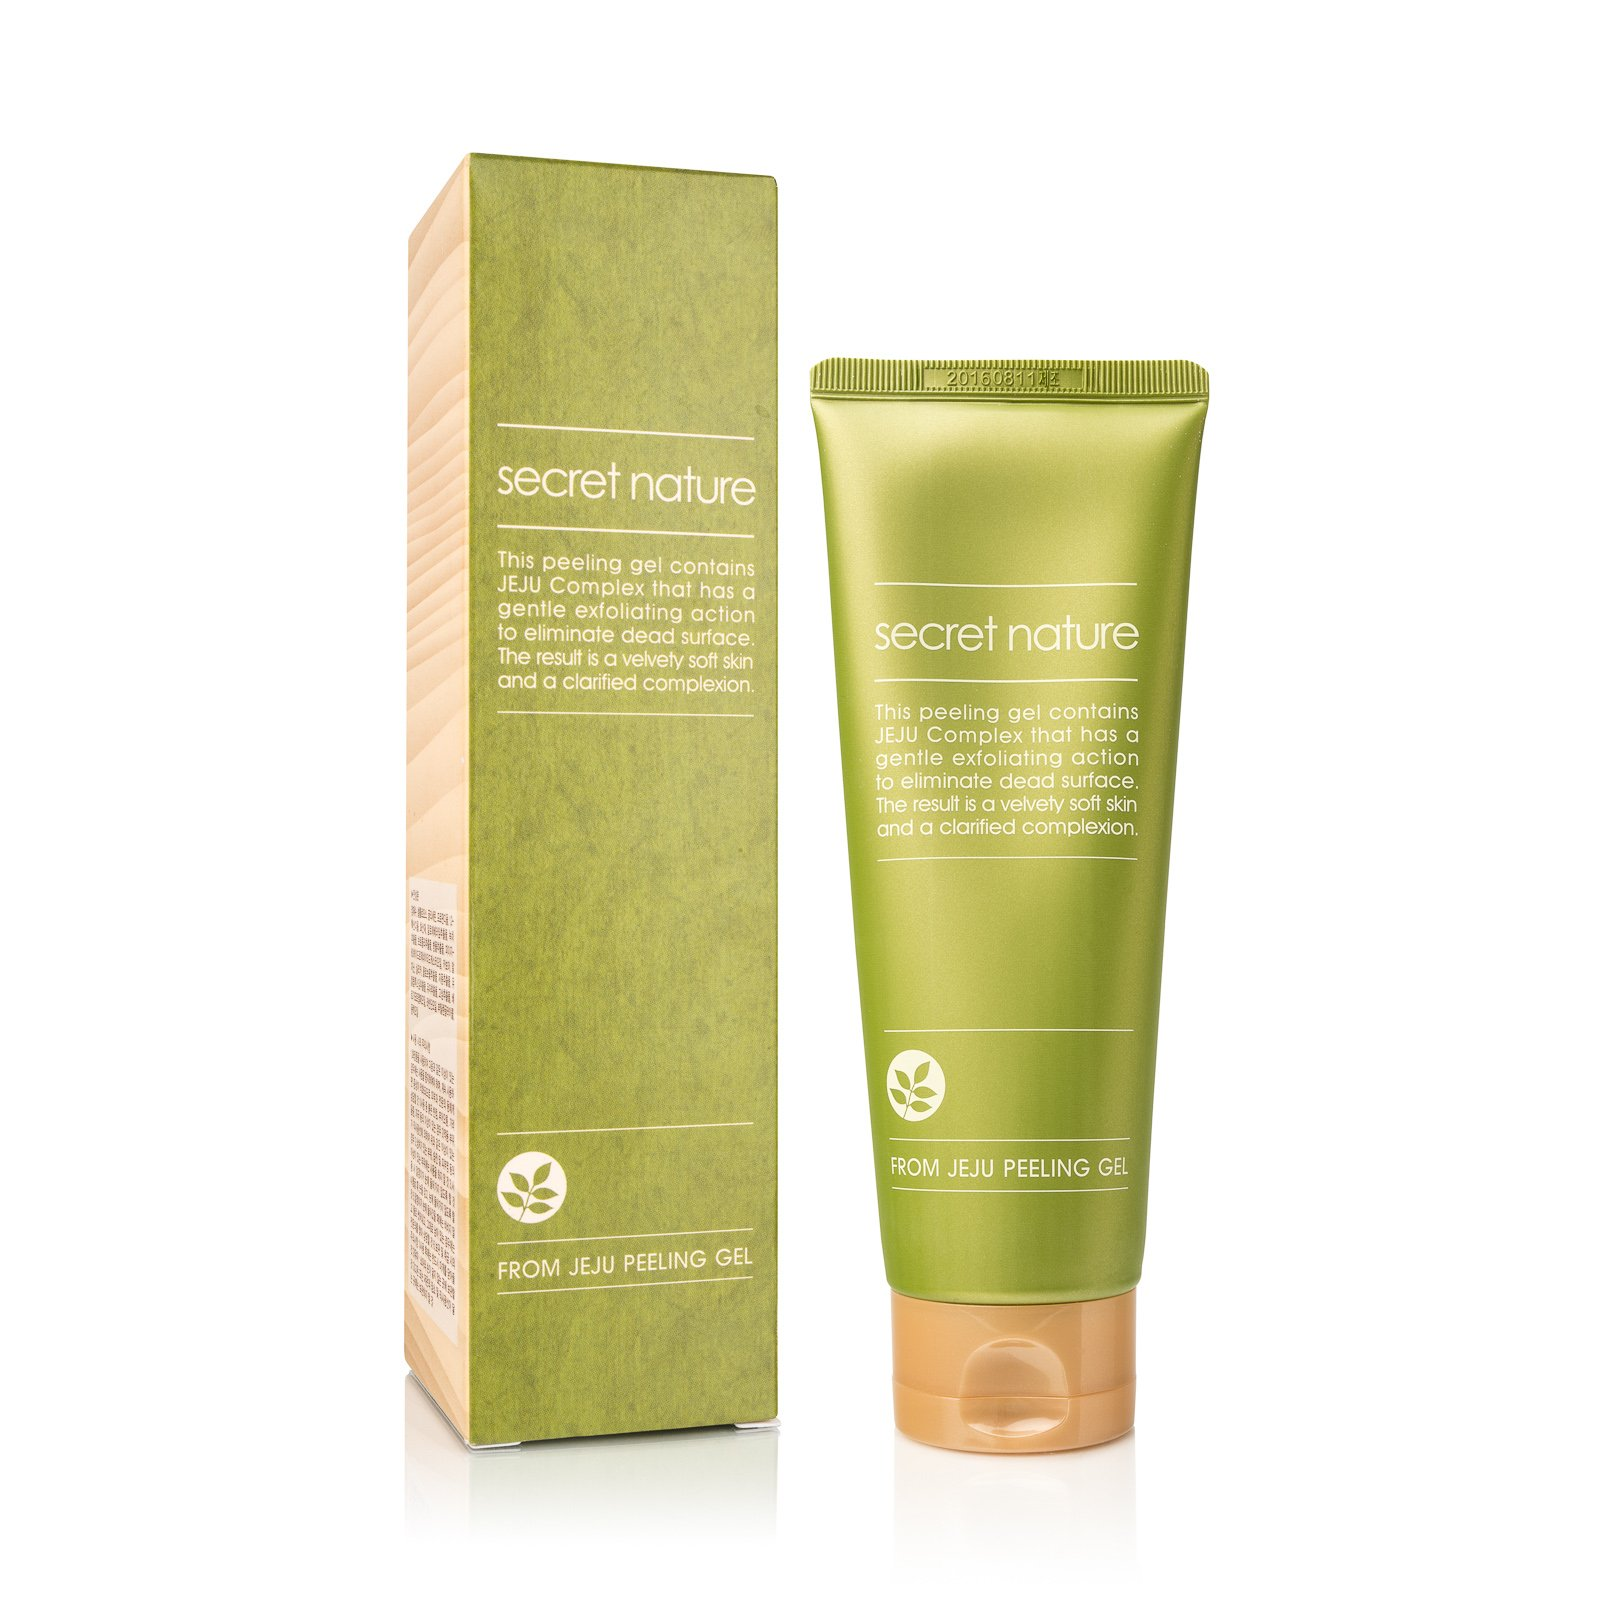 Exfoliating Korean Face Peeling Gel with Jeju Complex | Exfoliates the Dead Skin | Contains Activated Cellulose and Volcanic Ash | Achieve Soft & Healthy Skin | Prevent Aging and Acne Outbreaks